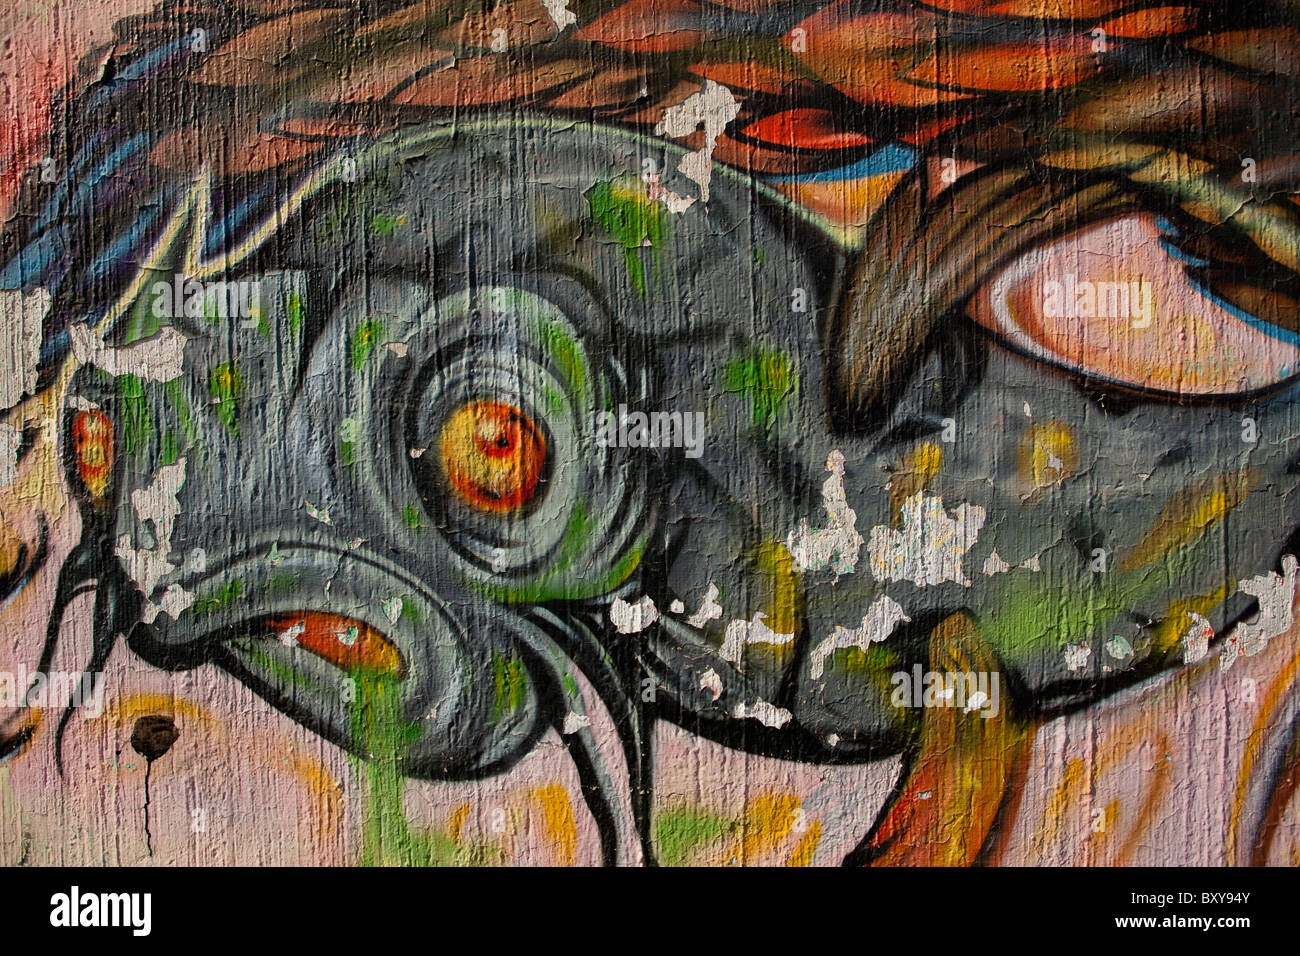 Abstract Wall Mural Depicting A Fish Along A Street In The Spanish